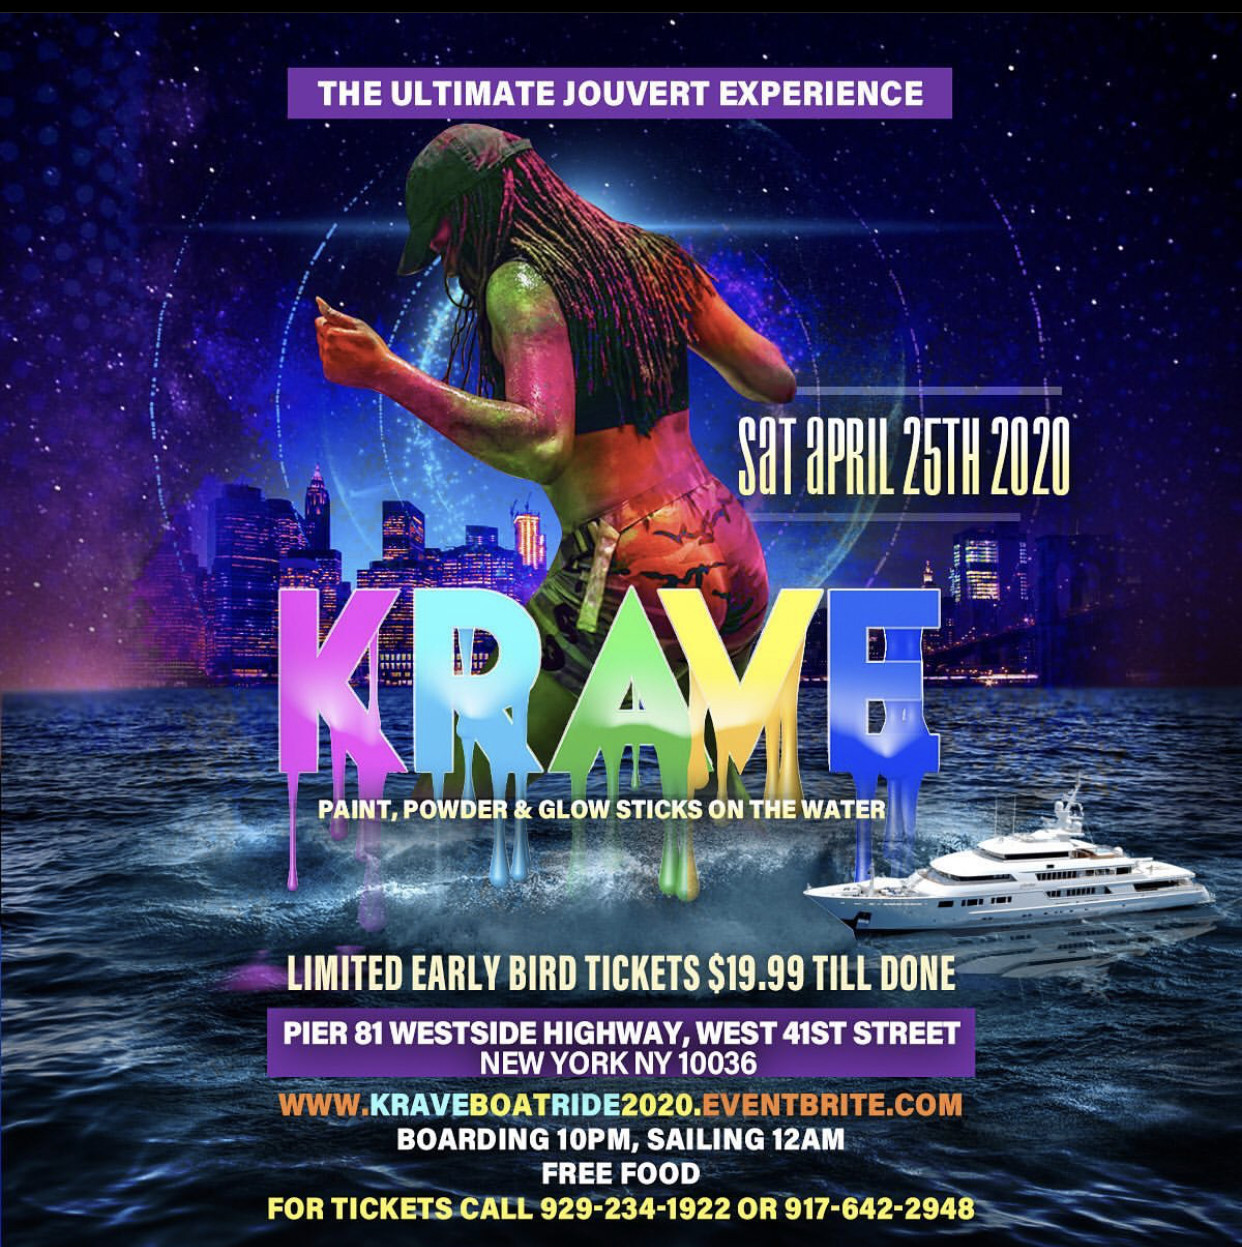 KRAVE PAINT POWDER & GLOW STICKS ON THE WATER 2020